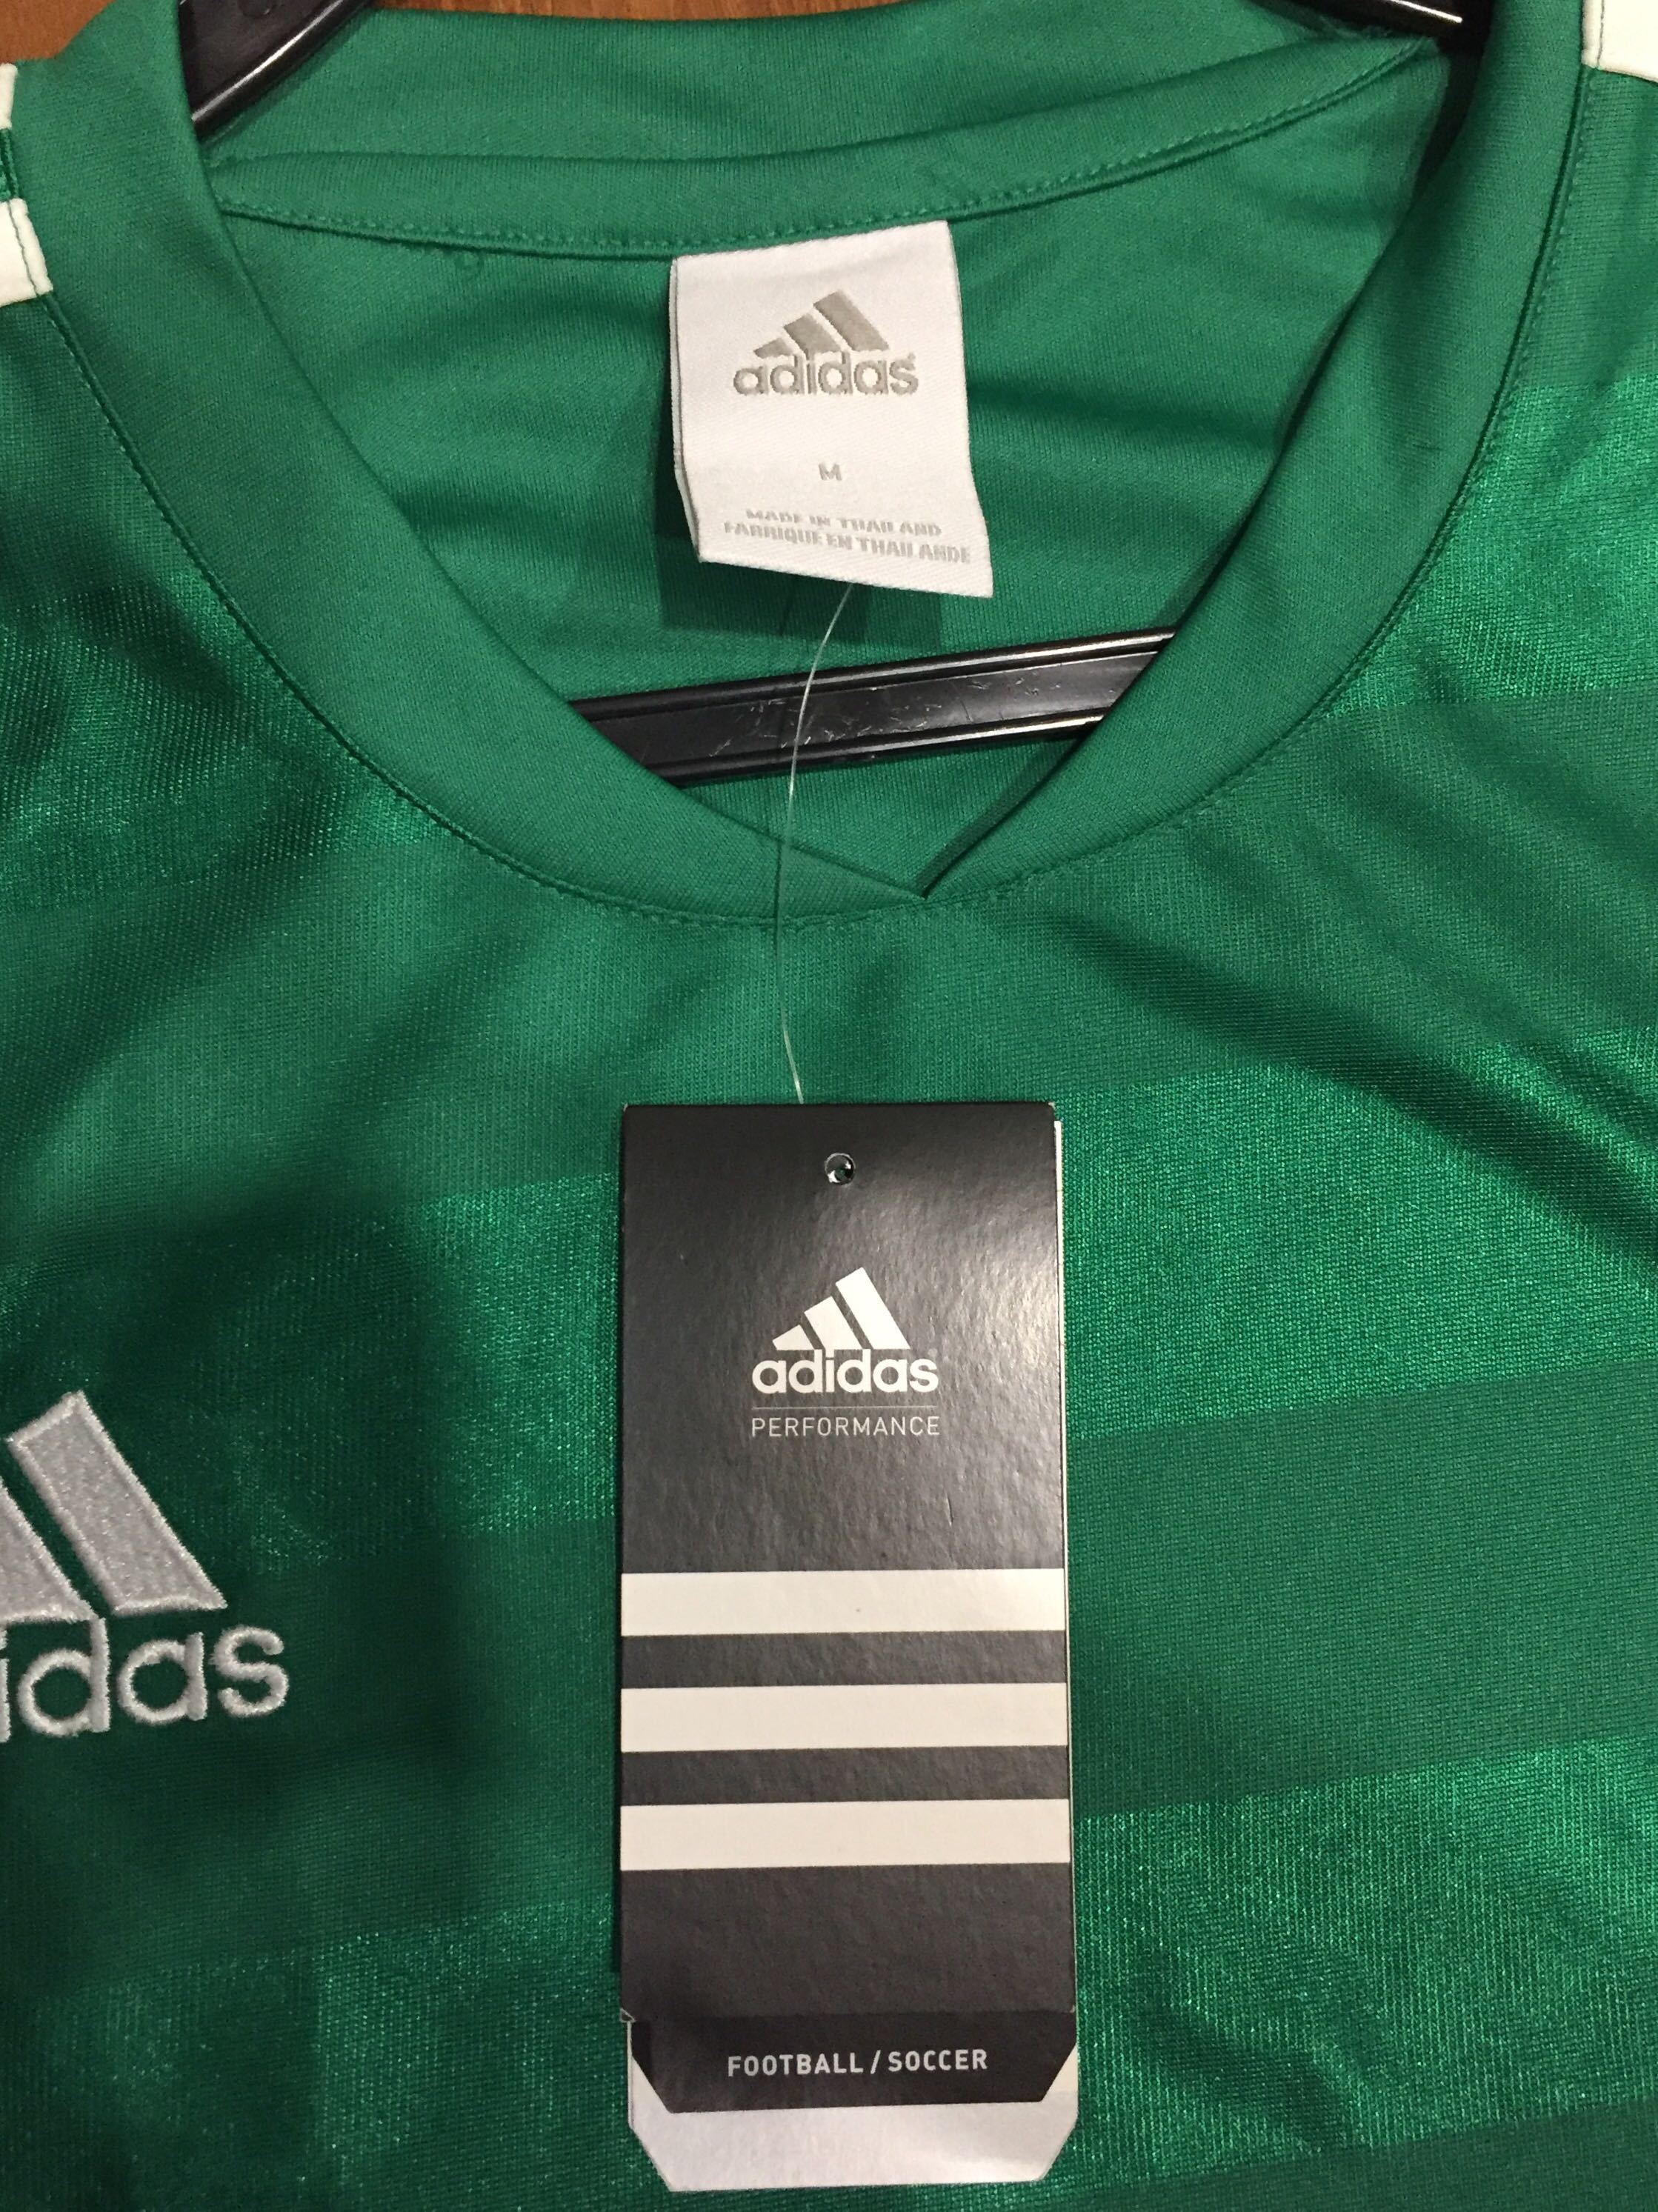 355e0562805 Brand New authentic Adidas Climalite football  soccer jersey ...